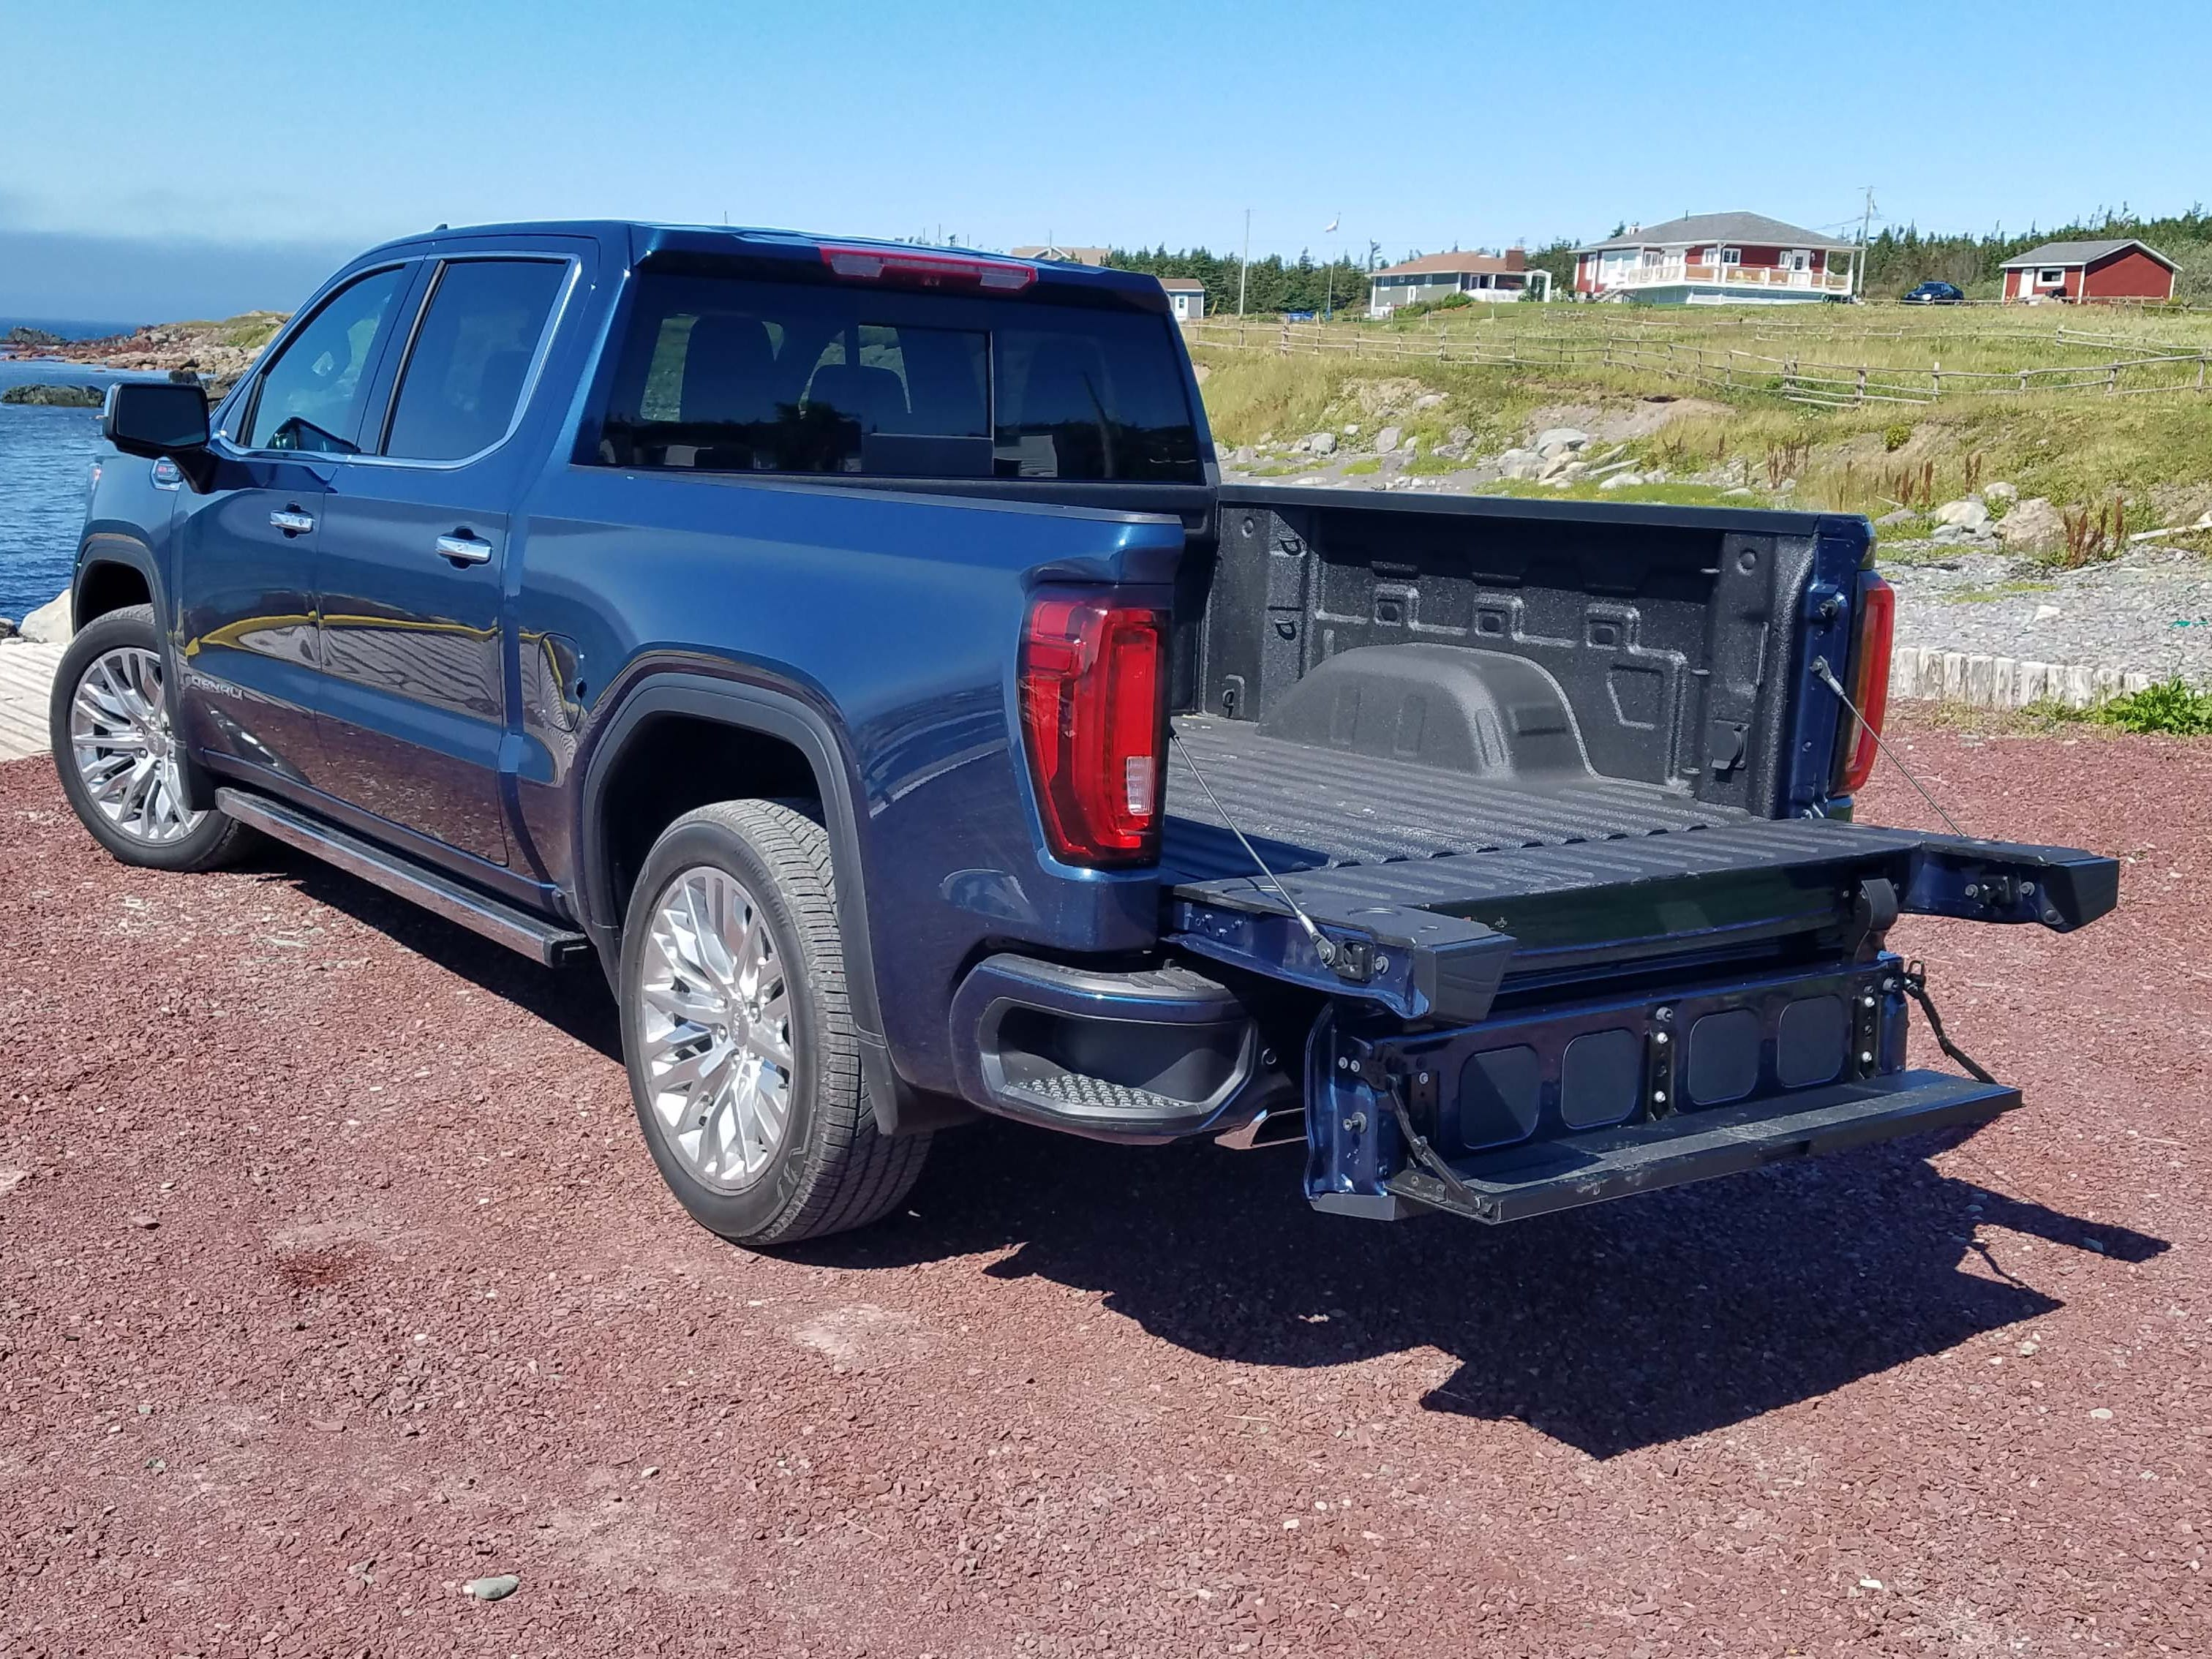 The 2019 GMC Sierra features a Swiss Army knife tailgate that is configurable six ways. Pictured is the drop-step feature for better access to the bed.